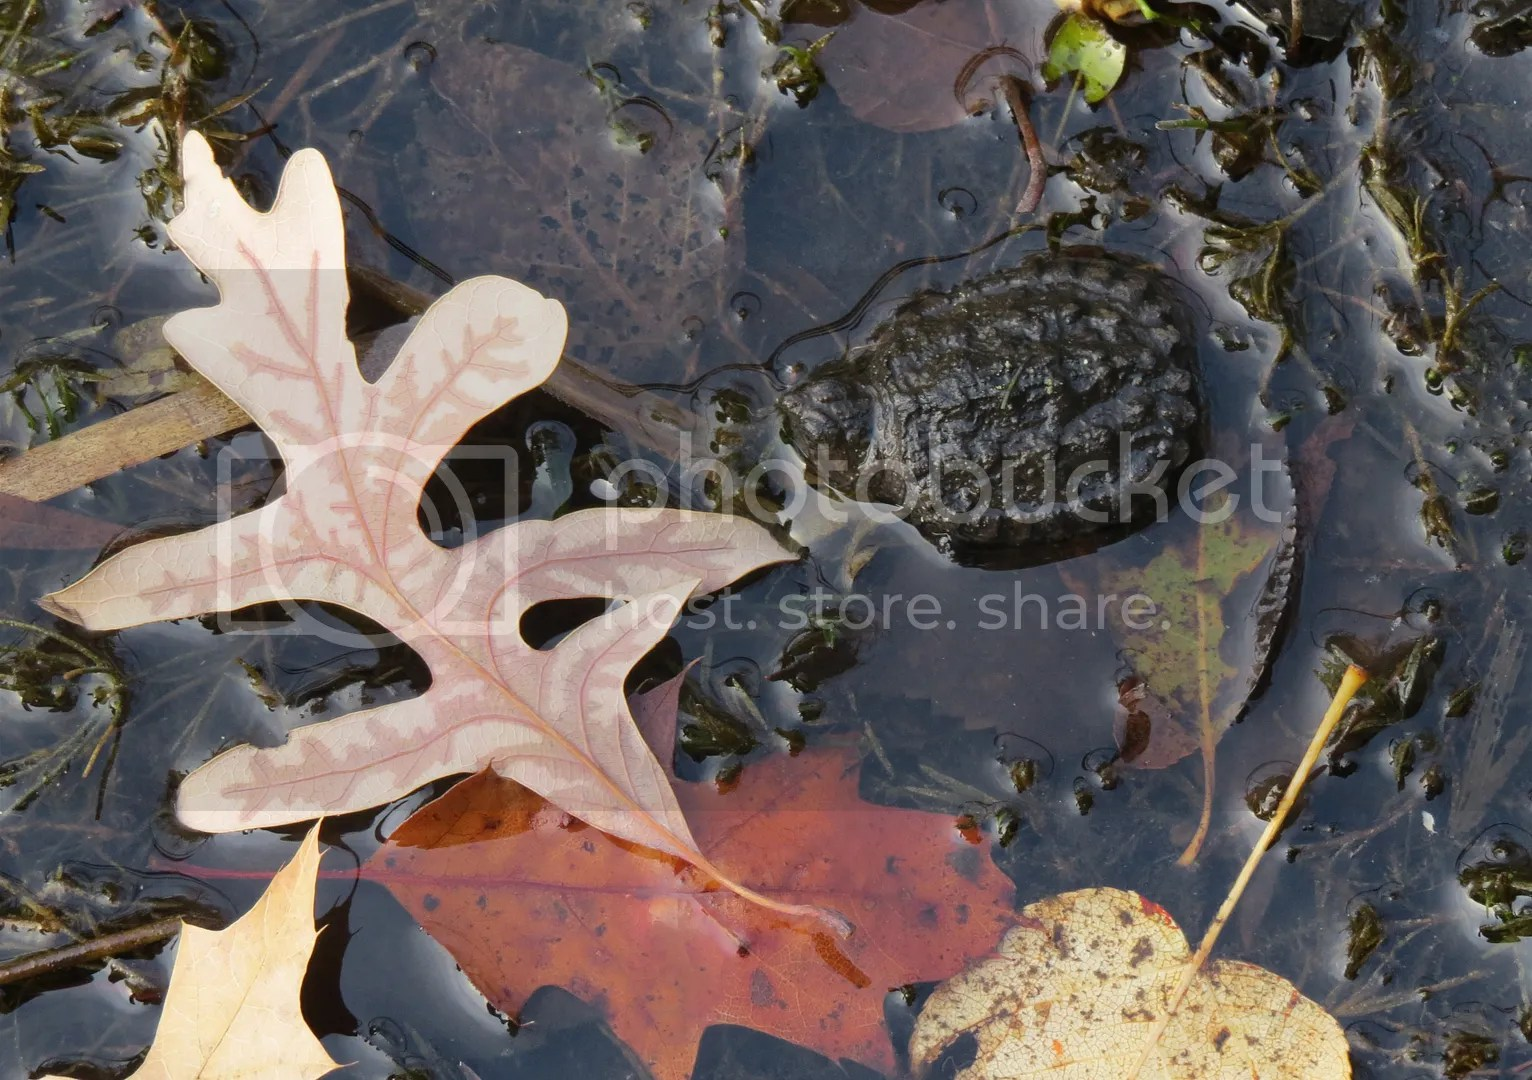 Hatchling Snapping Turtle photo IMG_6883_zpscc93f89f.jpg